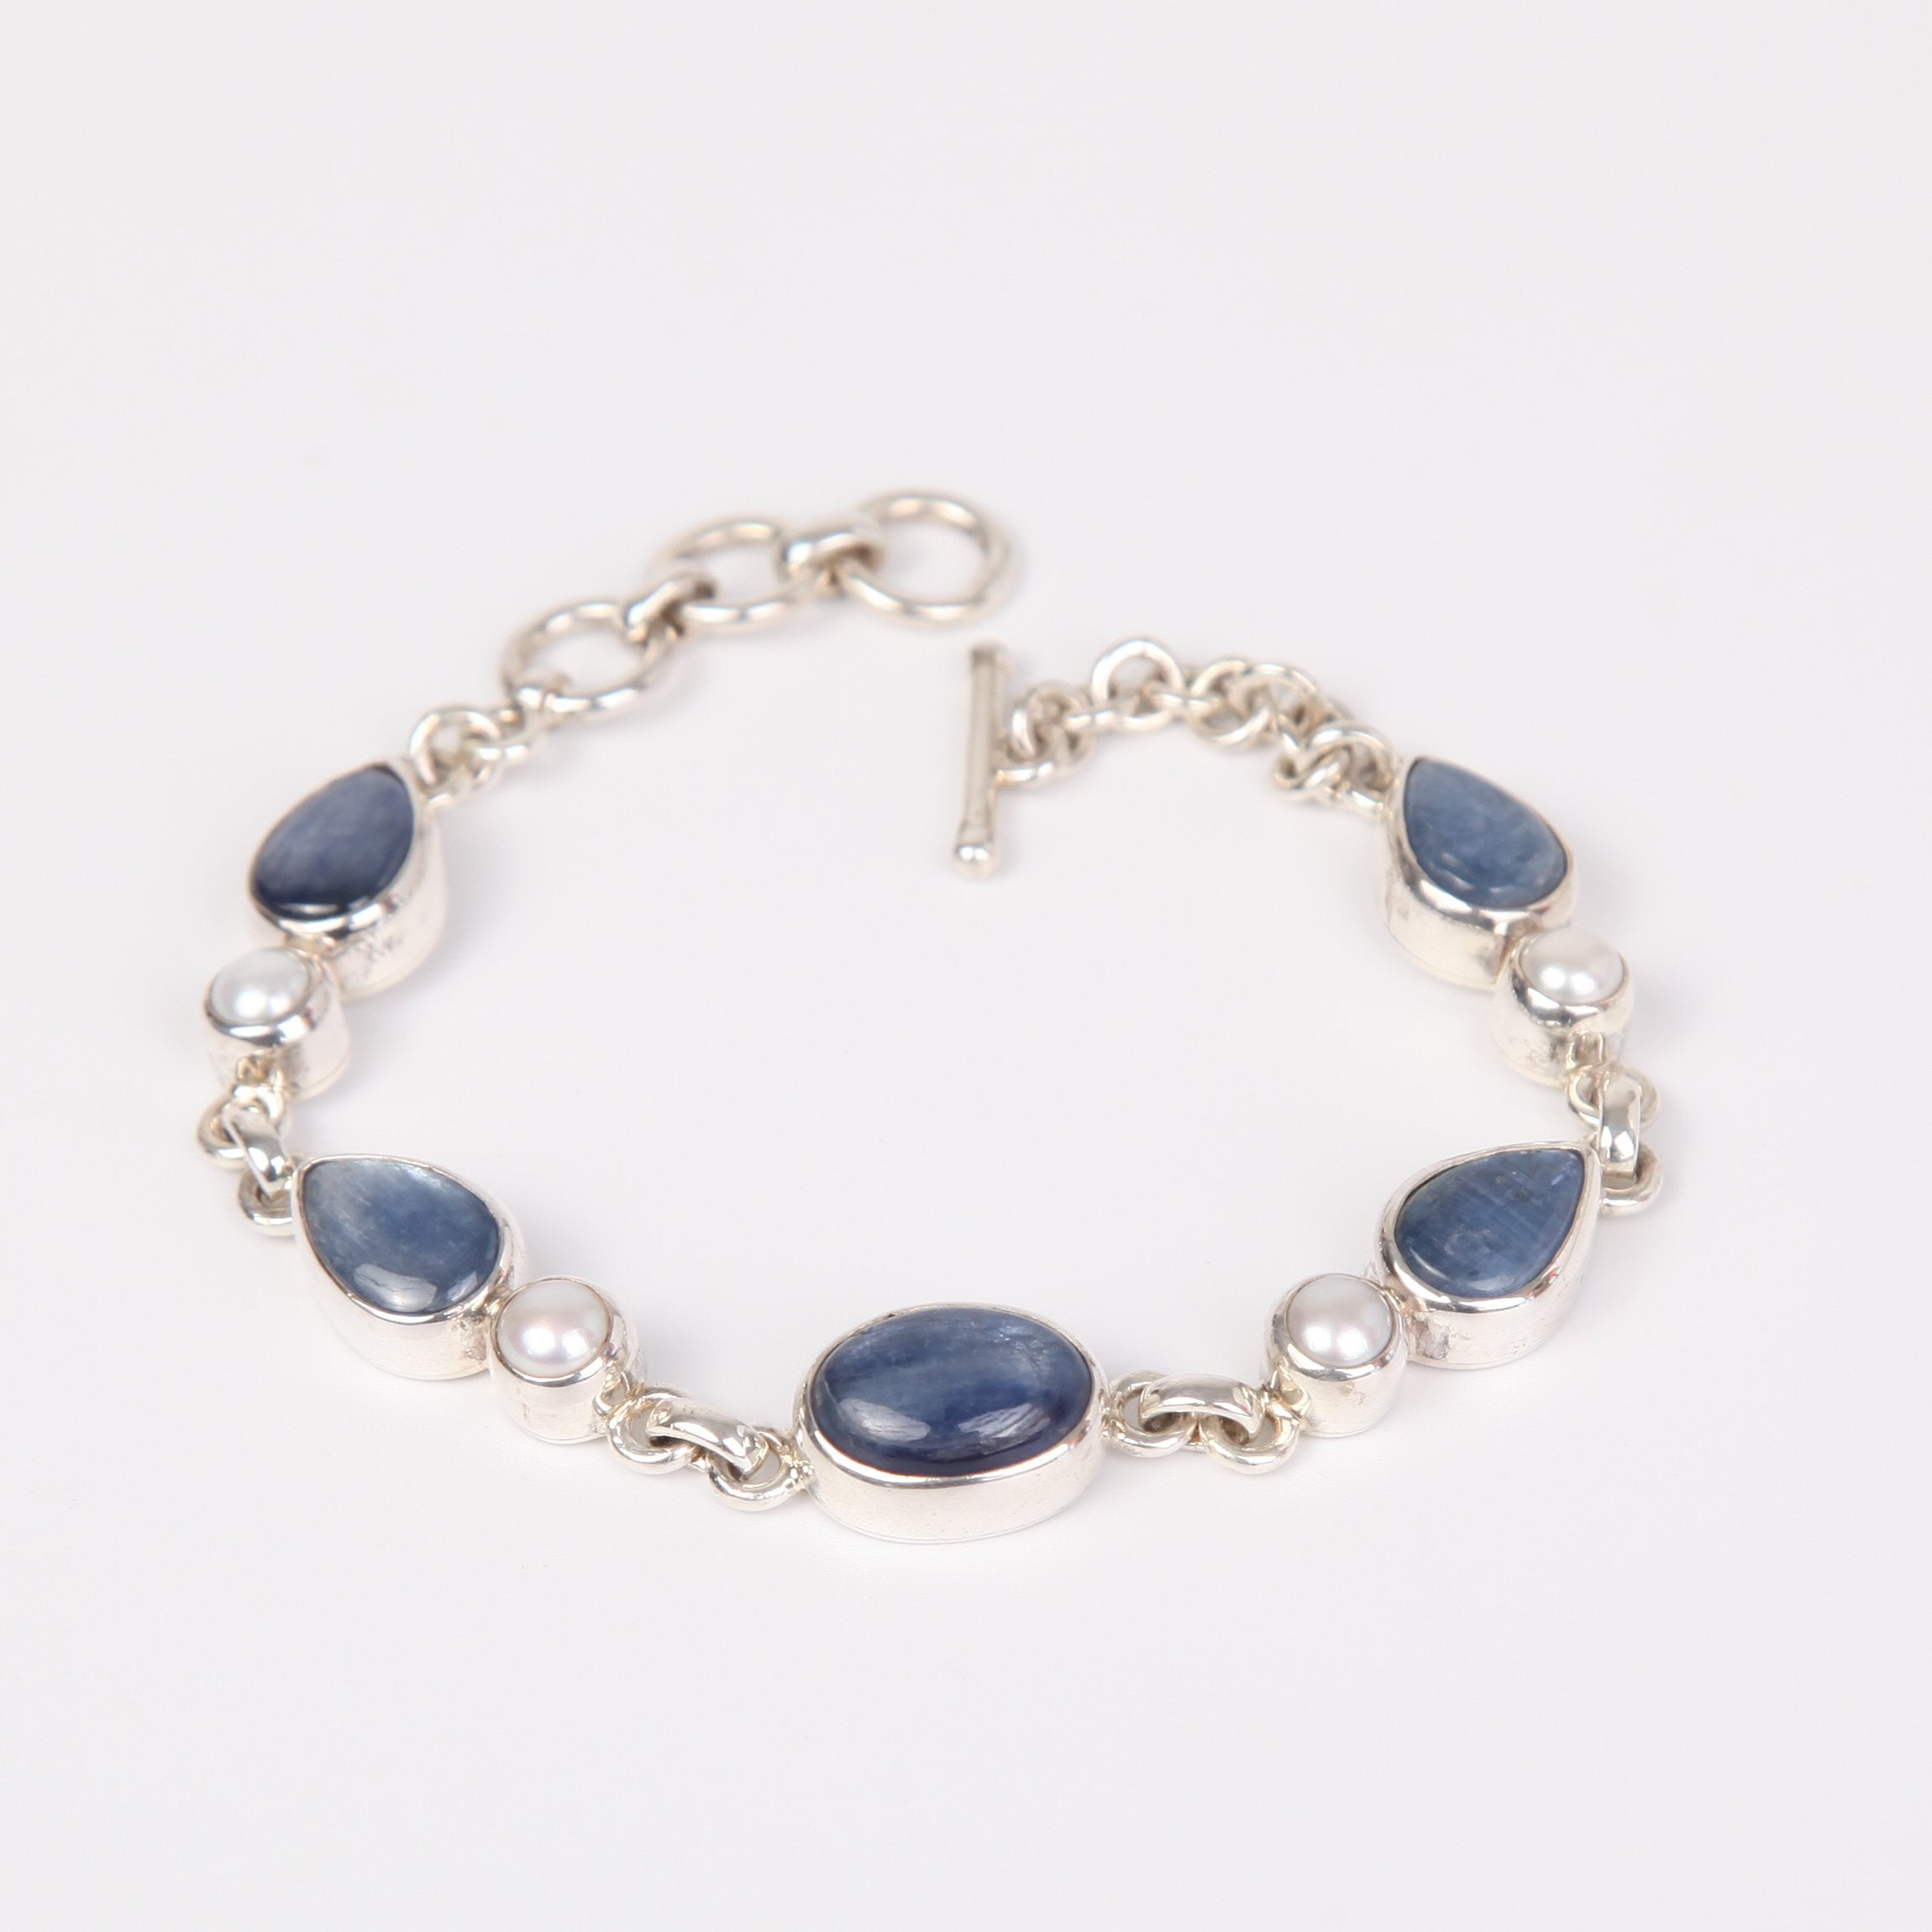 Kyanite Sterling Silver Bracelet with Fresh Water Pearls